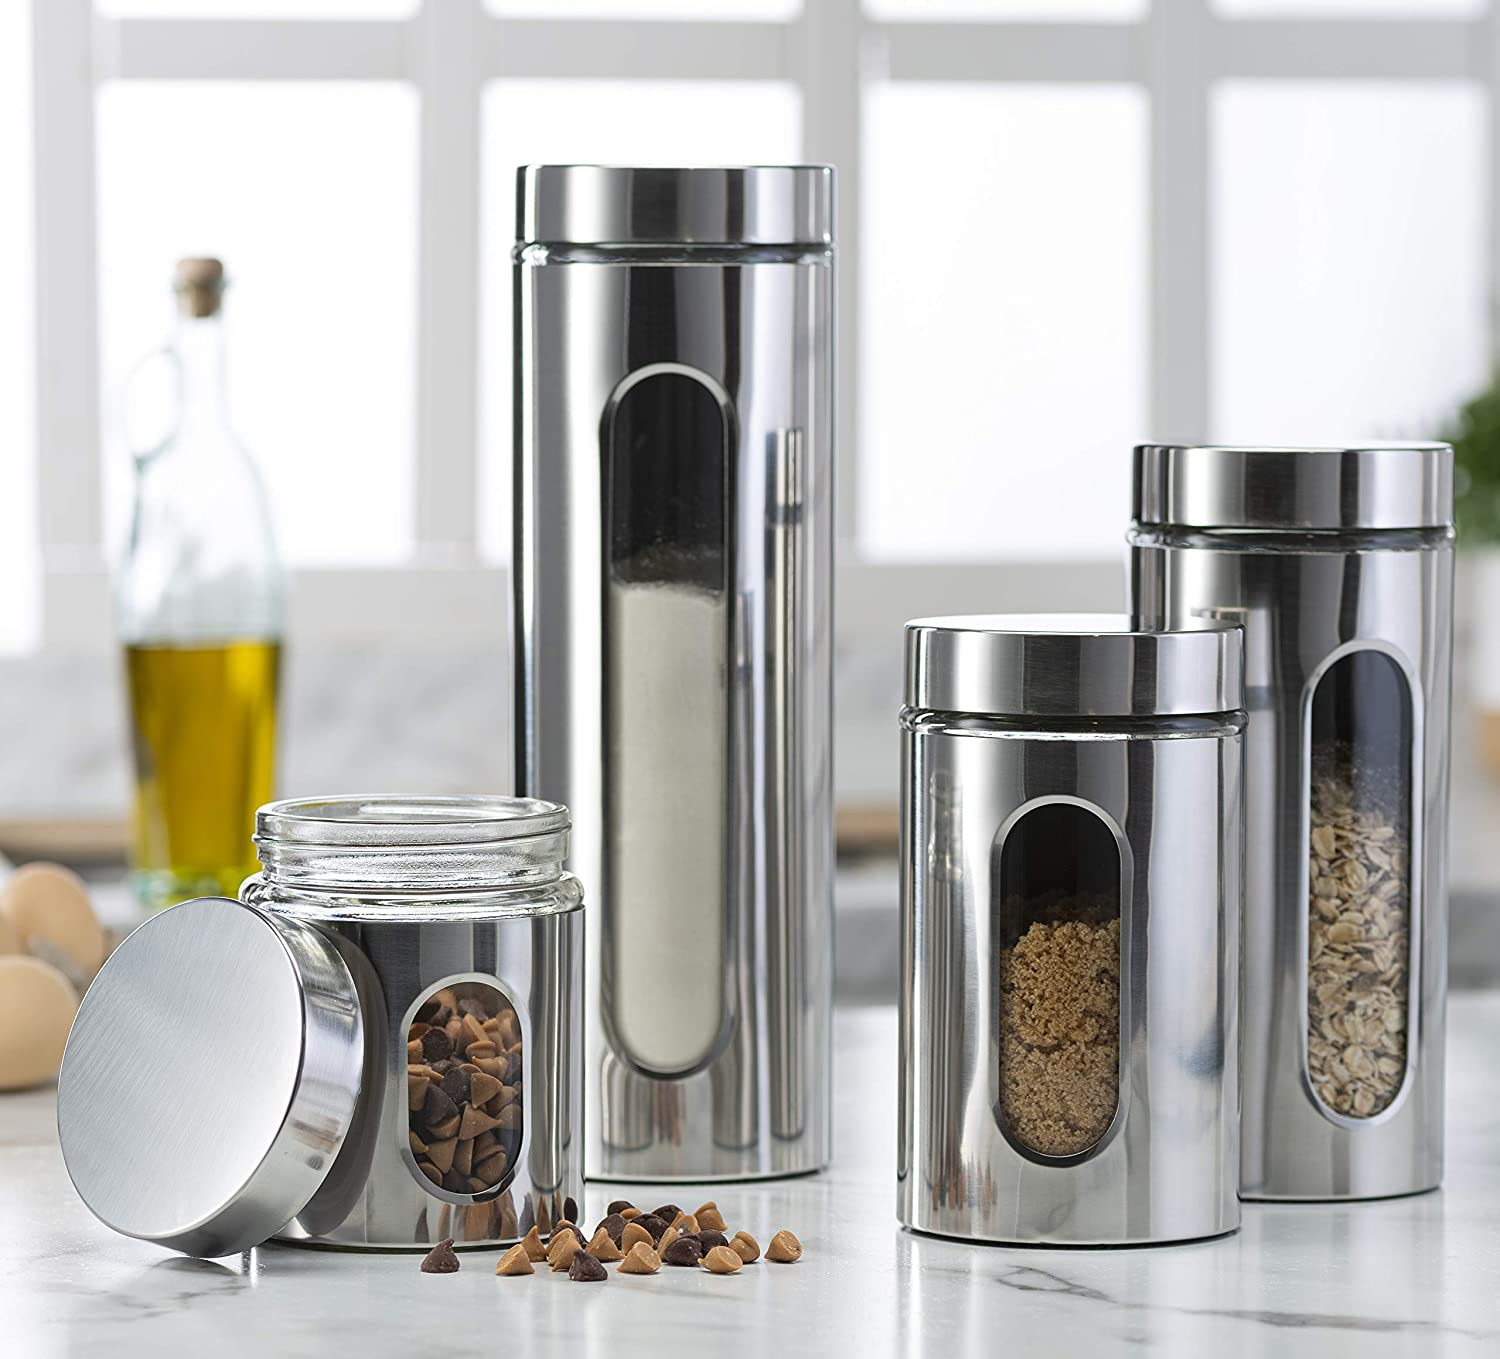 Quality Stainless Steel Canister Set for Kitchen Counter with Glass Window & Airtight Lid - Food Storage Containers with Lids Airtight - Pantry Storage and Organization Set